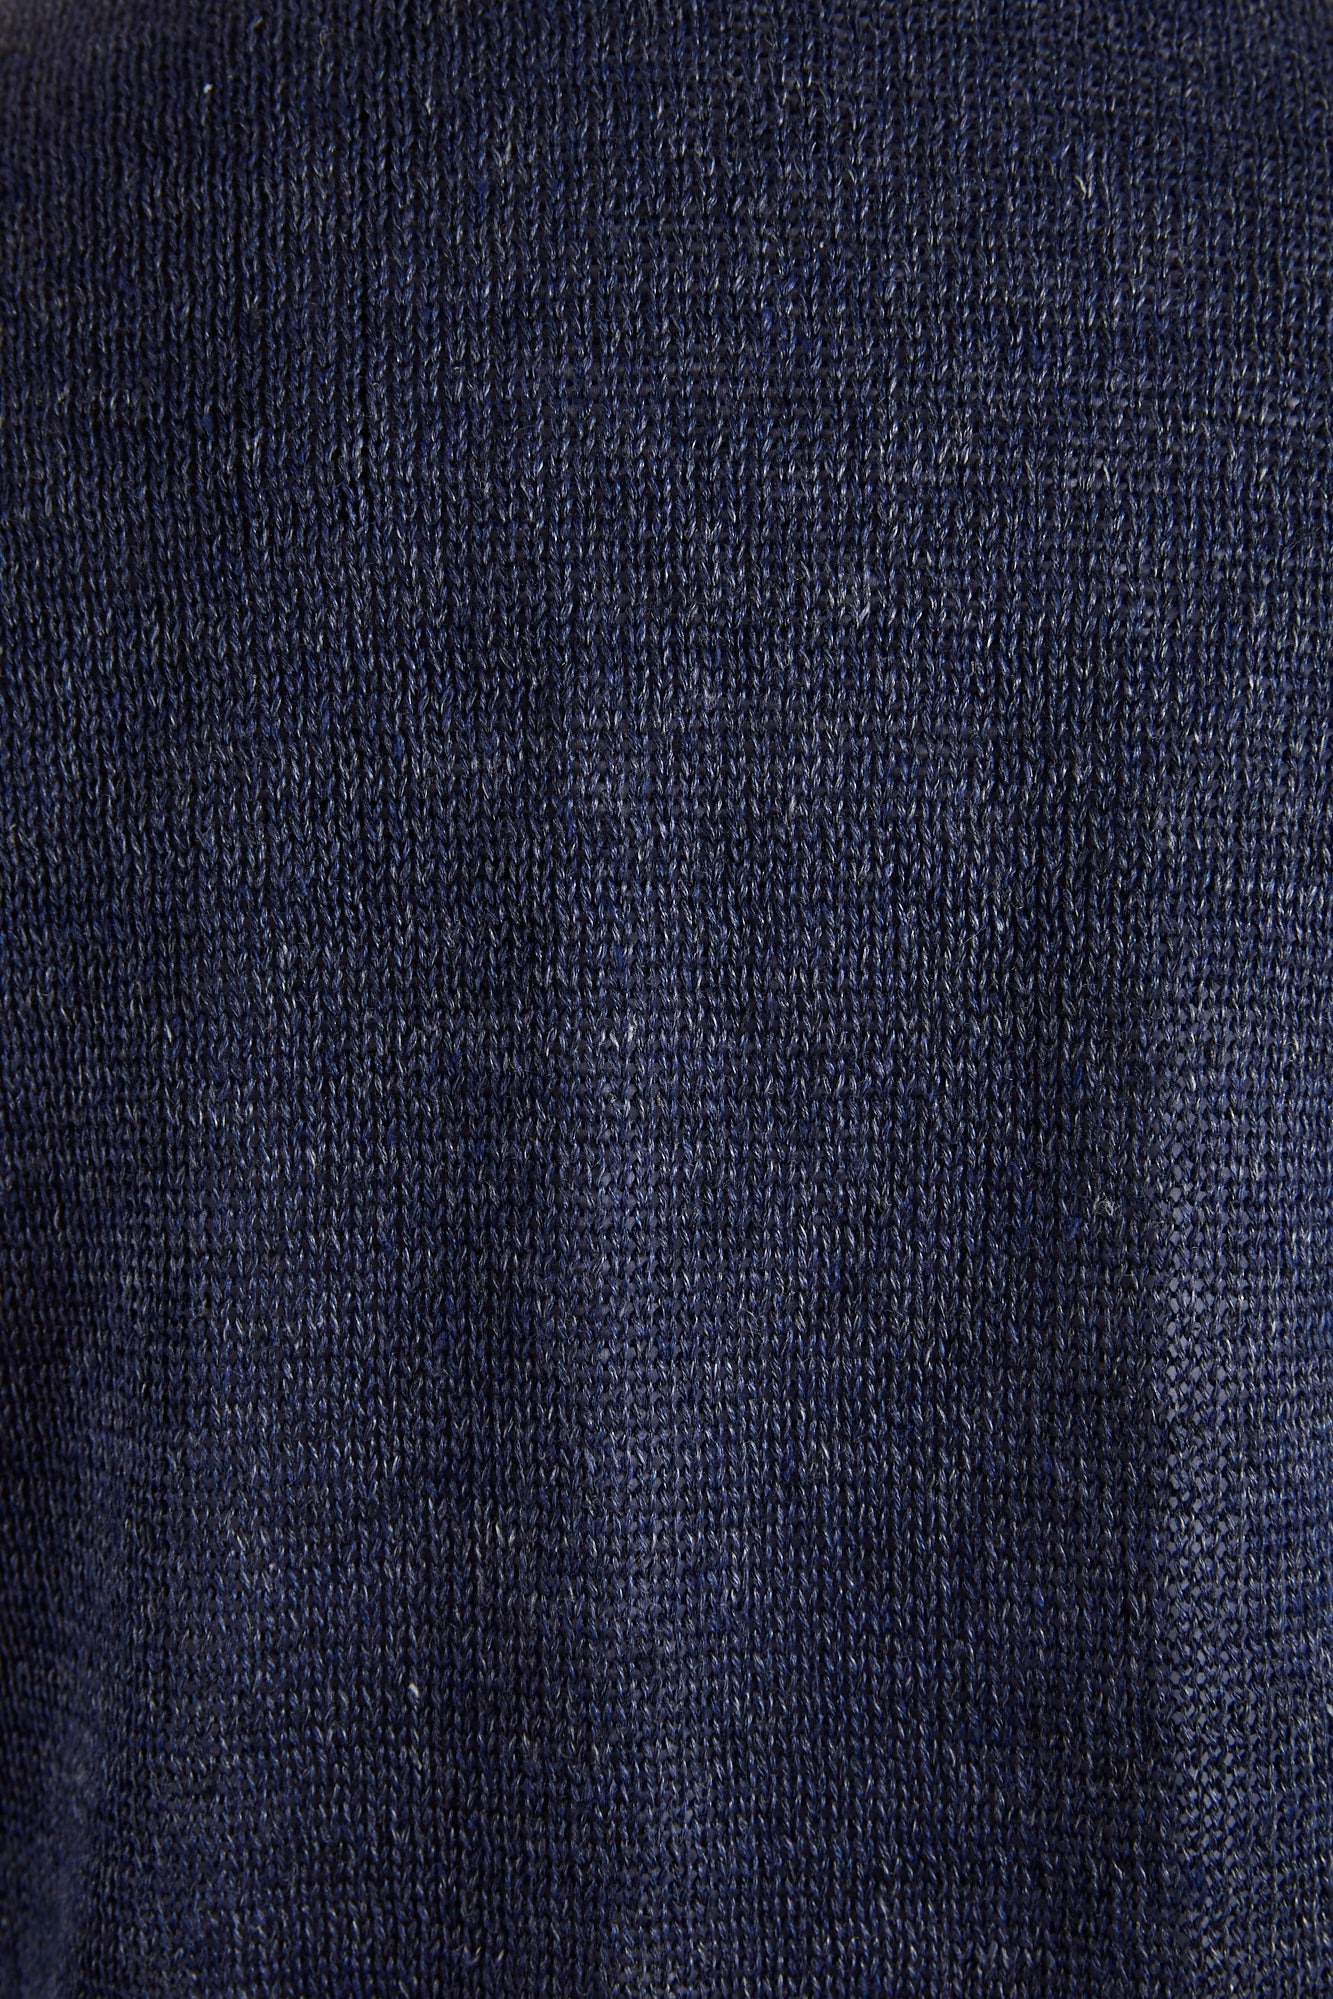 Inis Meáin Purple Linen Seal Sweater Jacket - Sweaters - Inis Meáin - LALONDE's